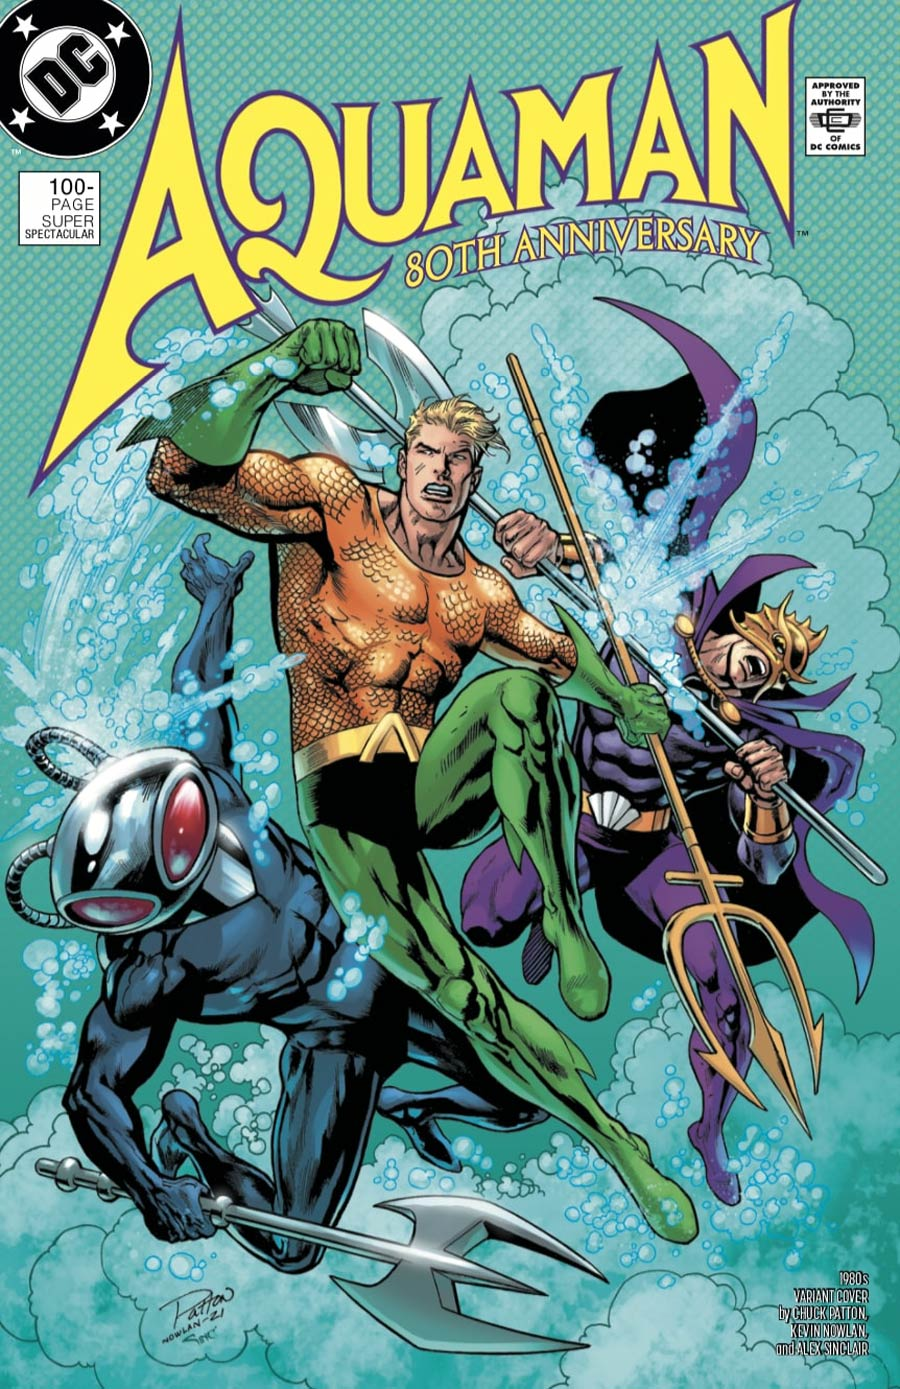 Aquaman 80th Anniversary 100-Page Super Spectacular #1 (One Shot) Cover F Variant Chuck Patton & Kevin Nowlan 1980s Cover